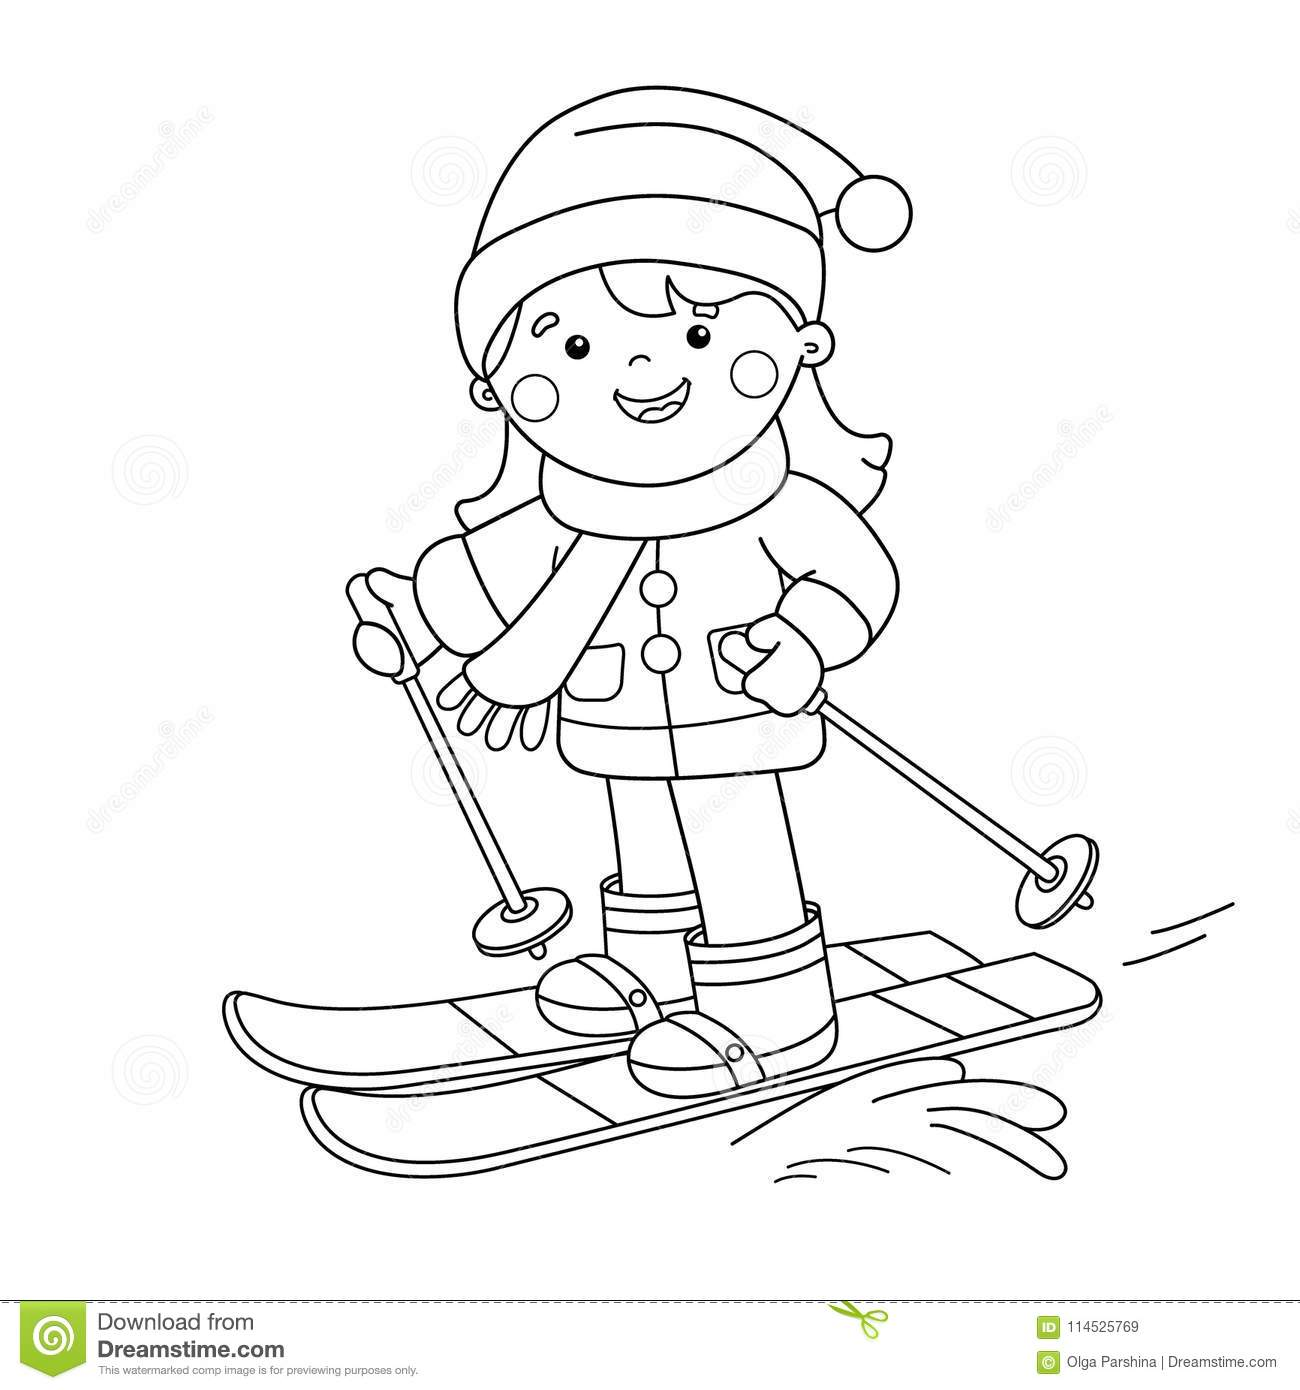 coloring page outline of cartoon girl skiing winter sports coloring book for kids stock. Black Bedroom Furniture Sets. Home Design Ideas